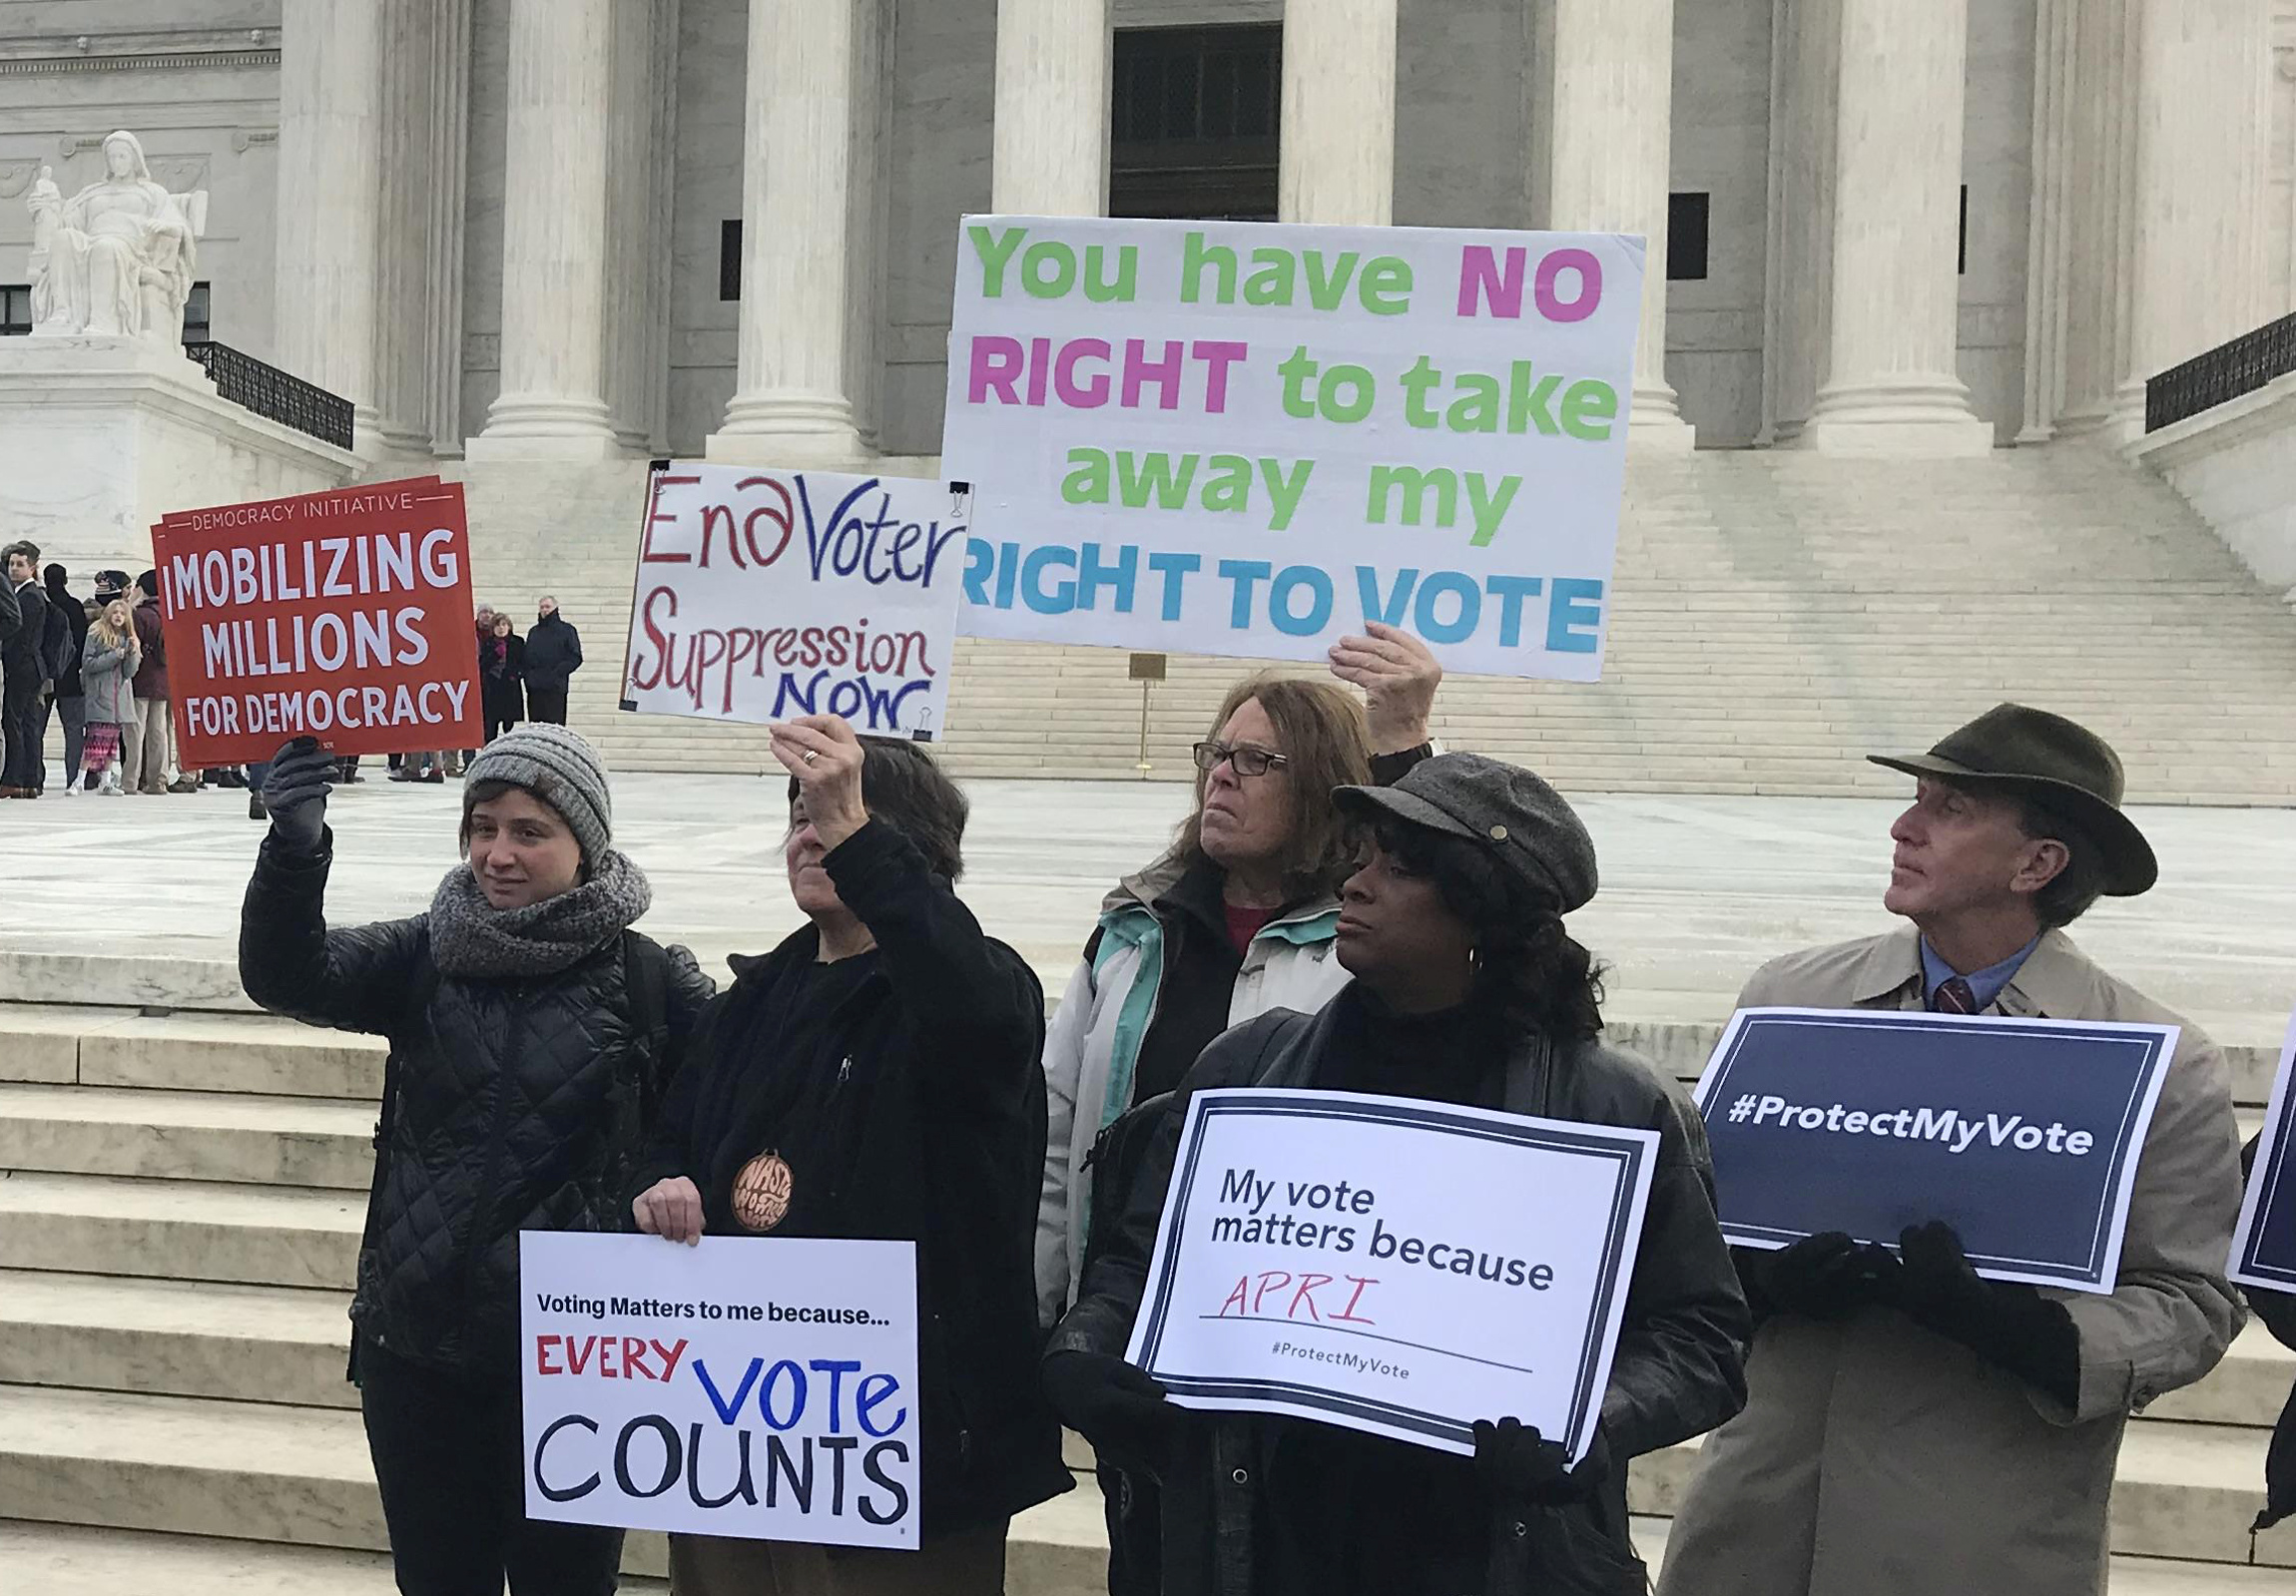 Activists rally outside the U.S. Supreme Court ahead of arguments in a key voting rights case involving a challenge to the OhioÕs policy of purging infrequent voters from voter registration rolls, in Washington, U.S., January 10, 2018.